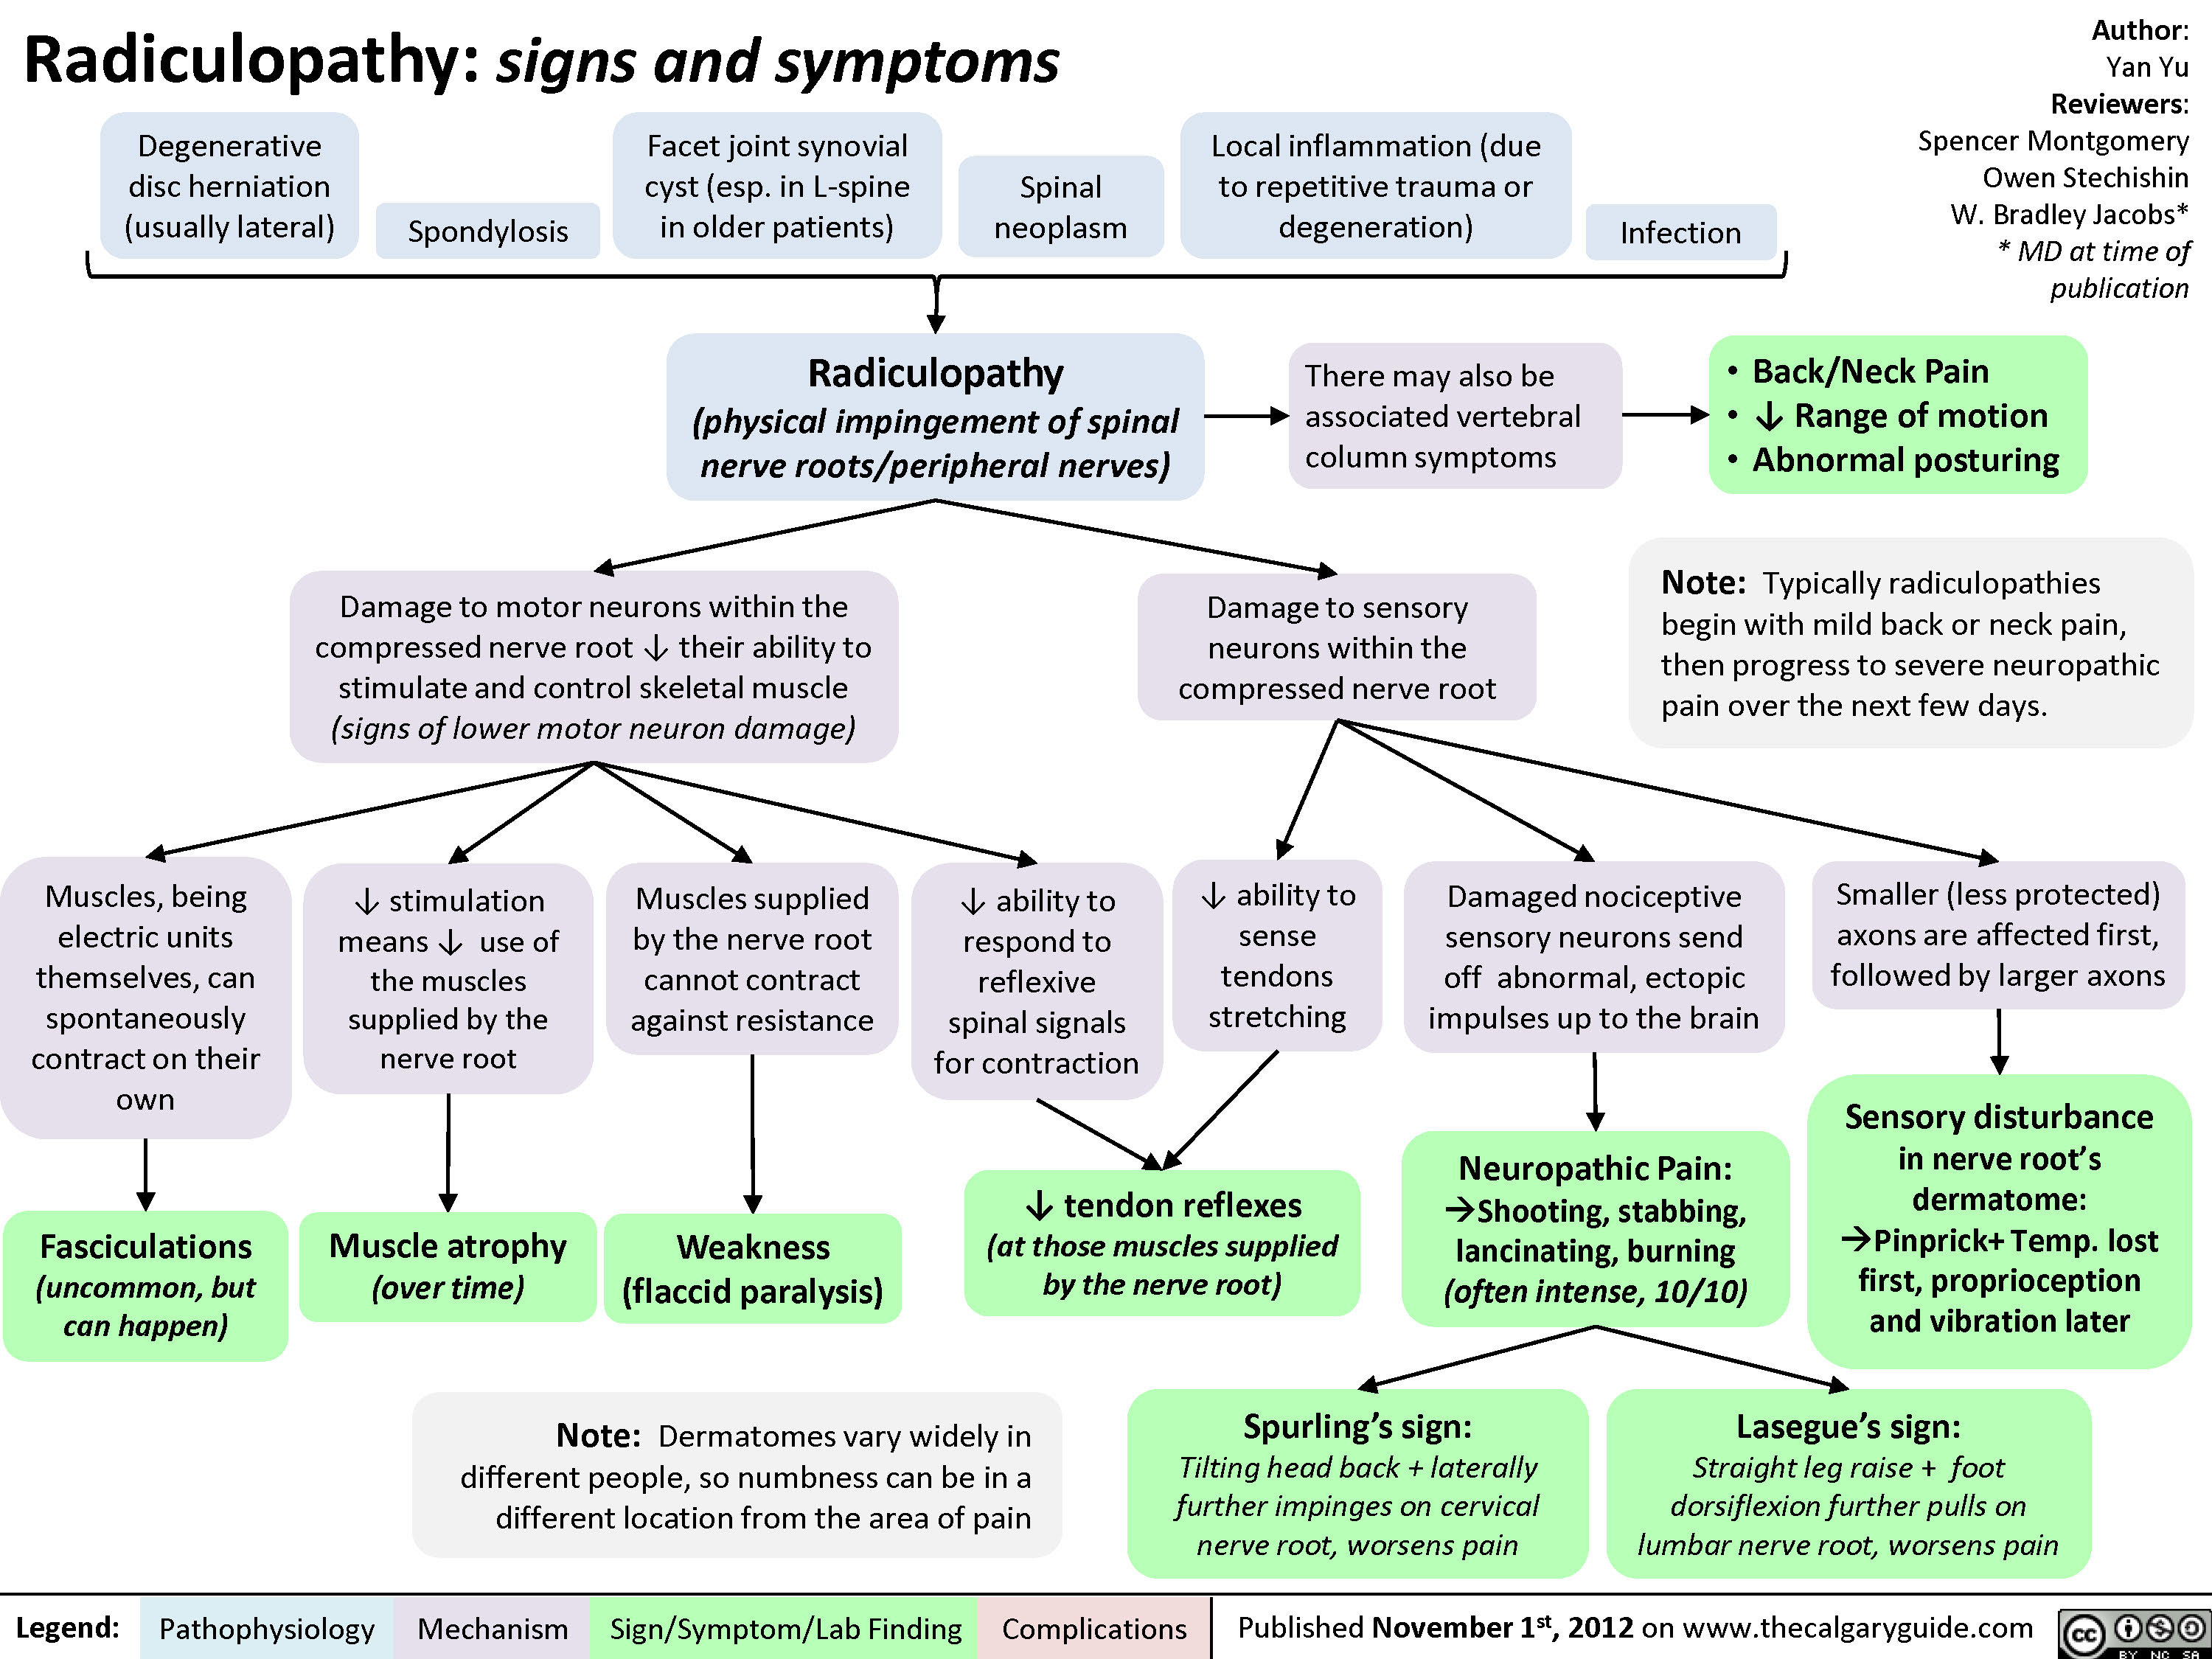 Radiculopathy